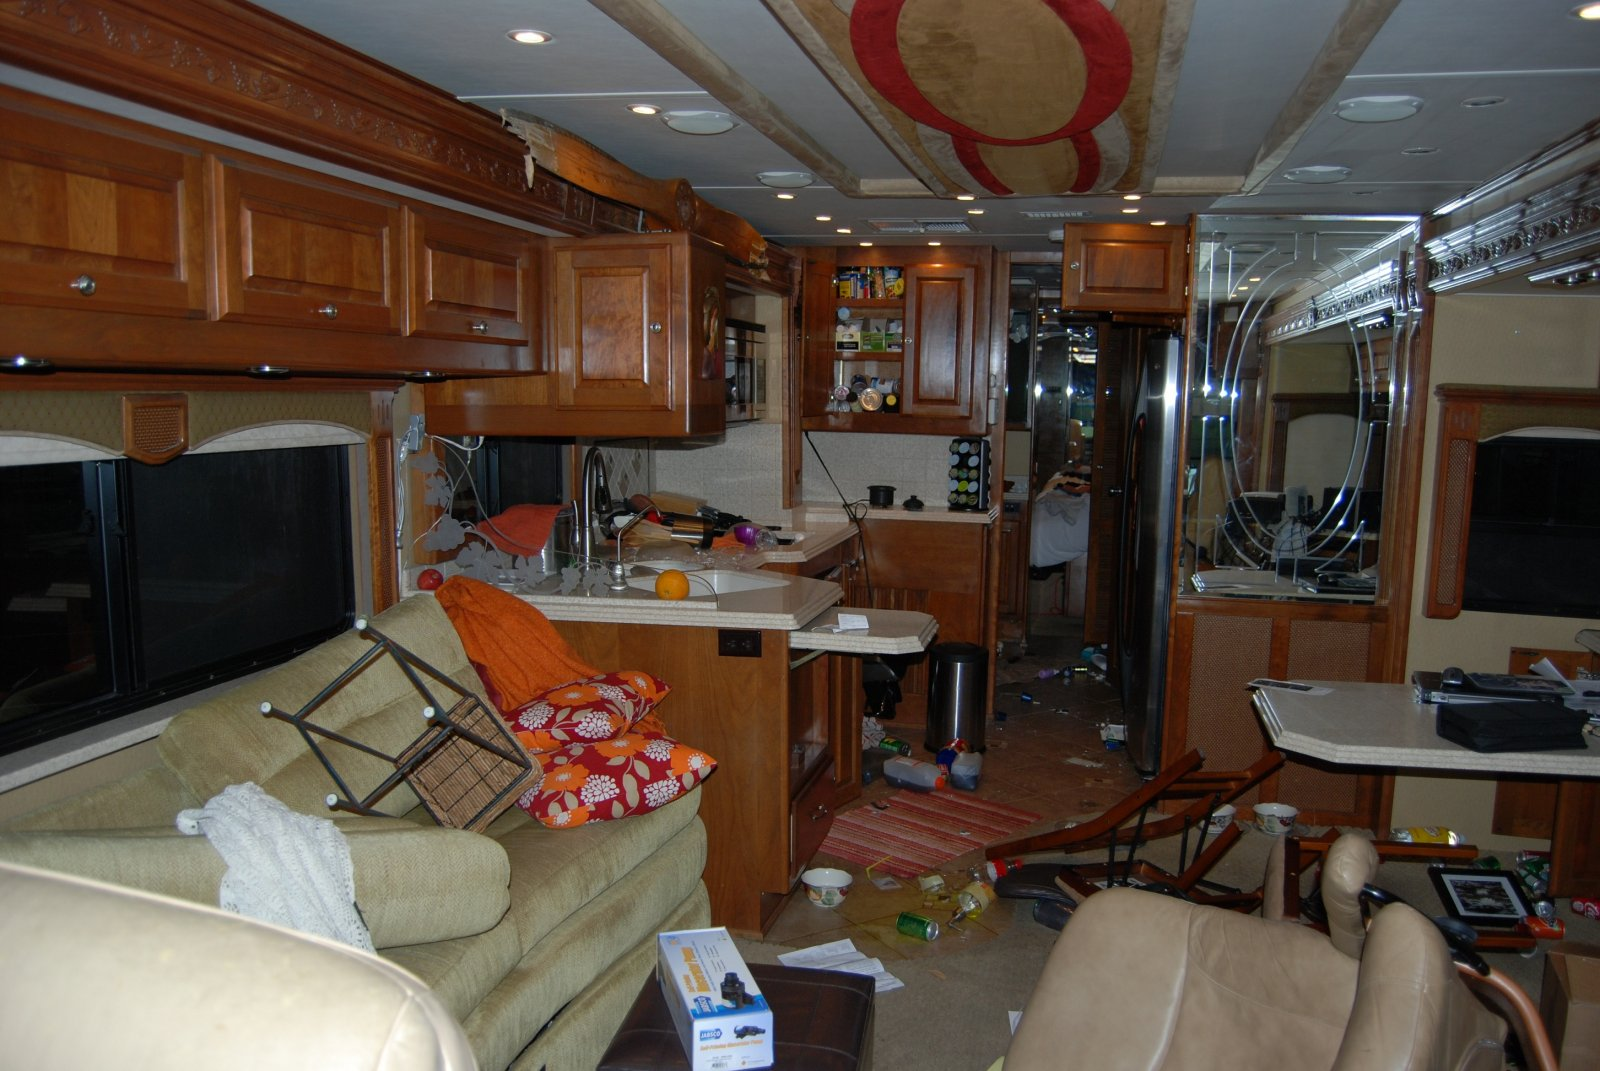 Click image for larger version  Name:Inside mess.jpg Views:542 Size:275.6 KB ID:20317